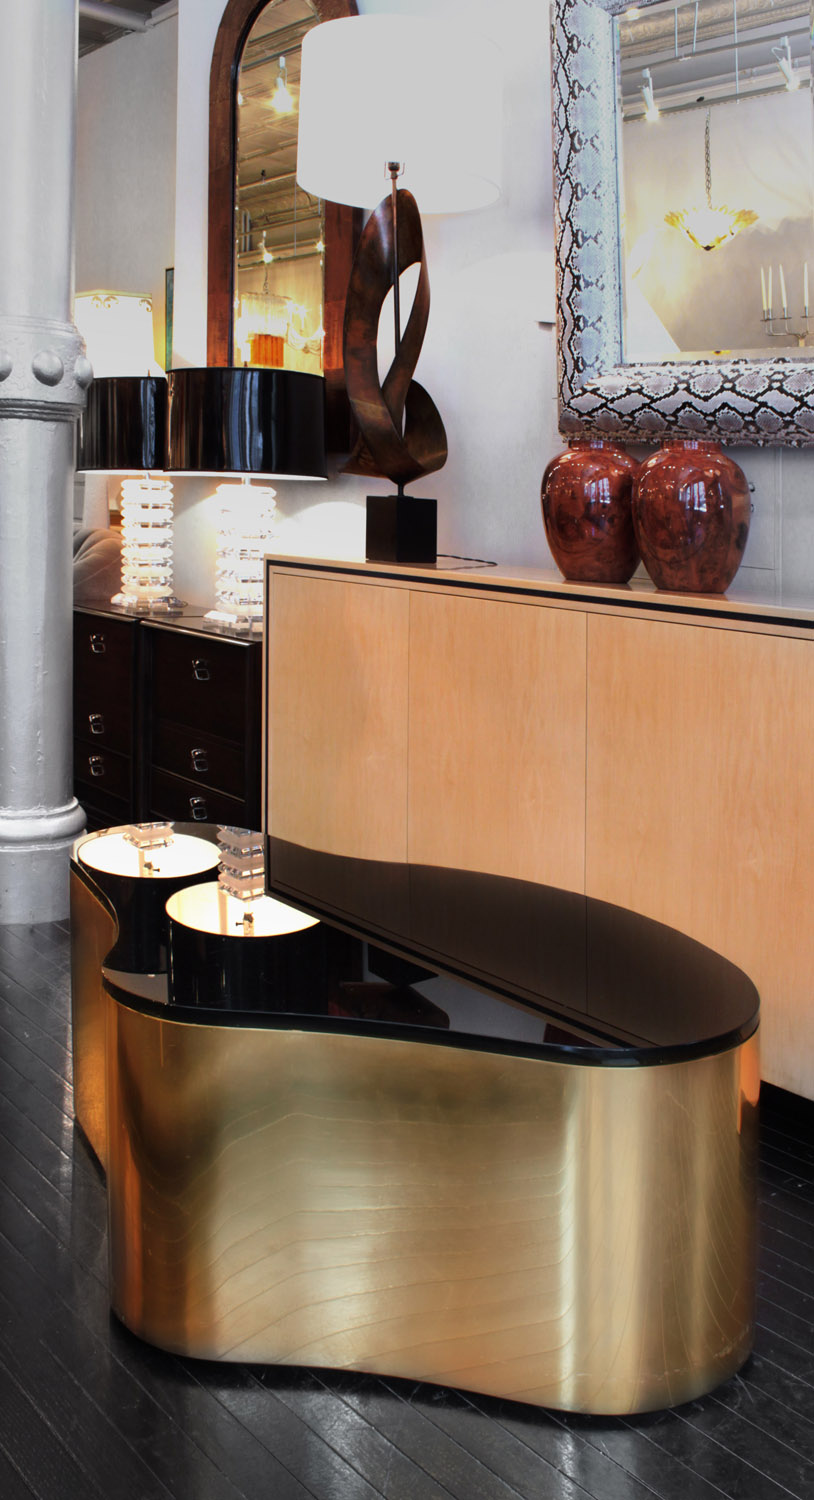 Springer 350 Free Form brass coffeetable359 detail4 hires web.jpg